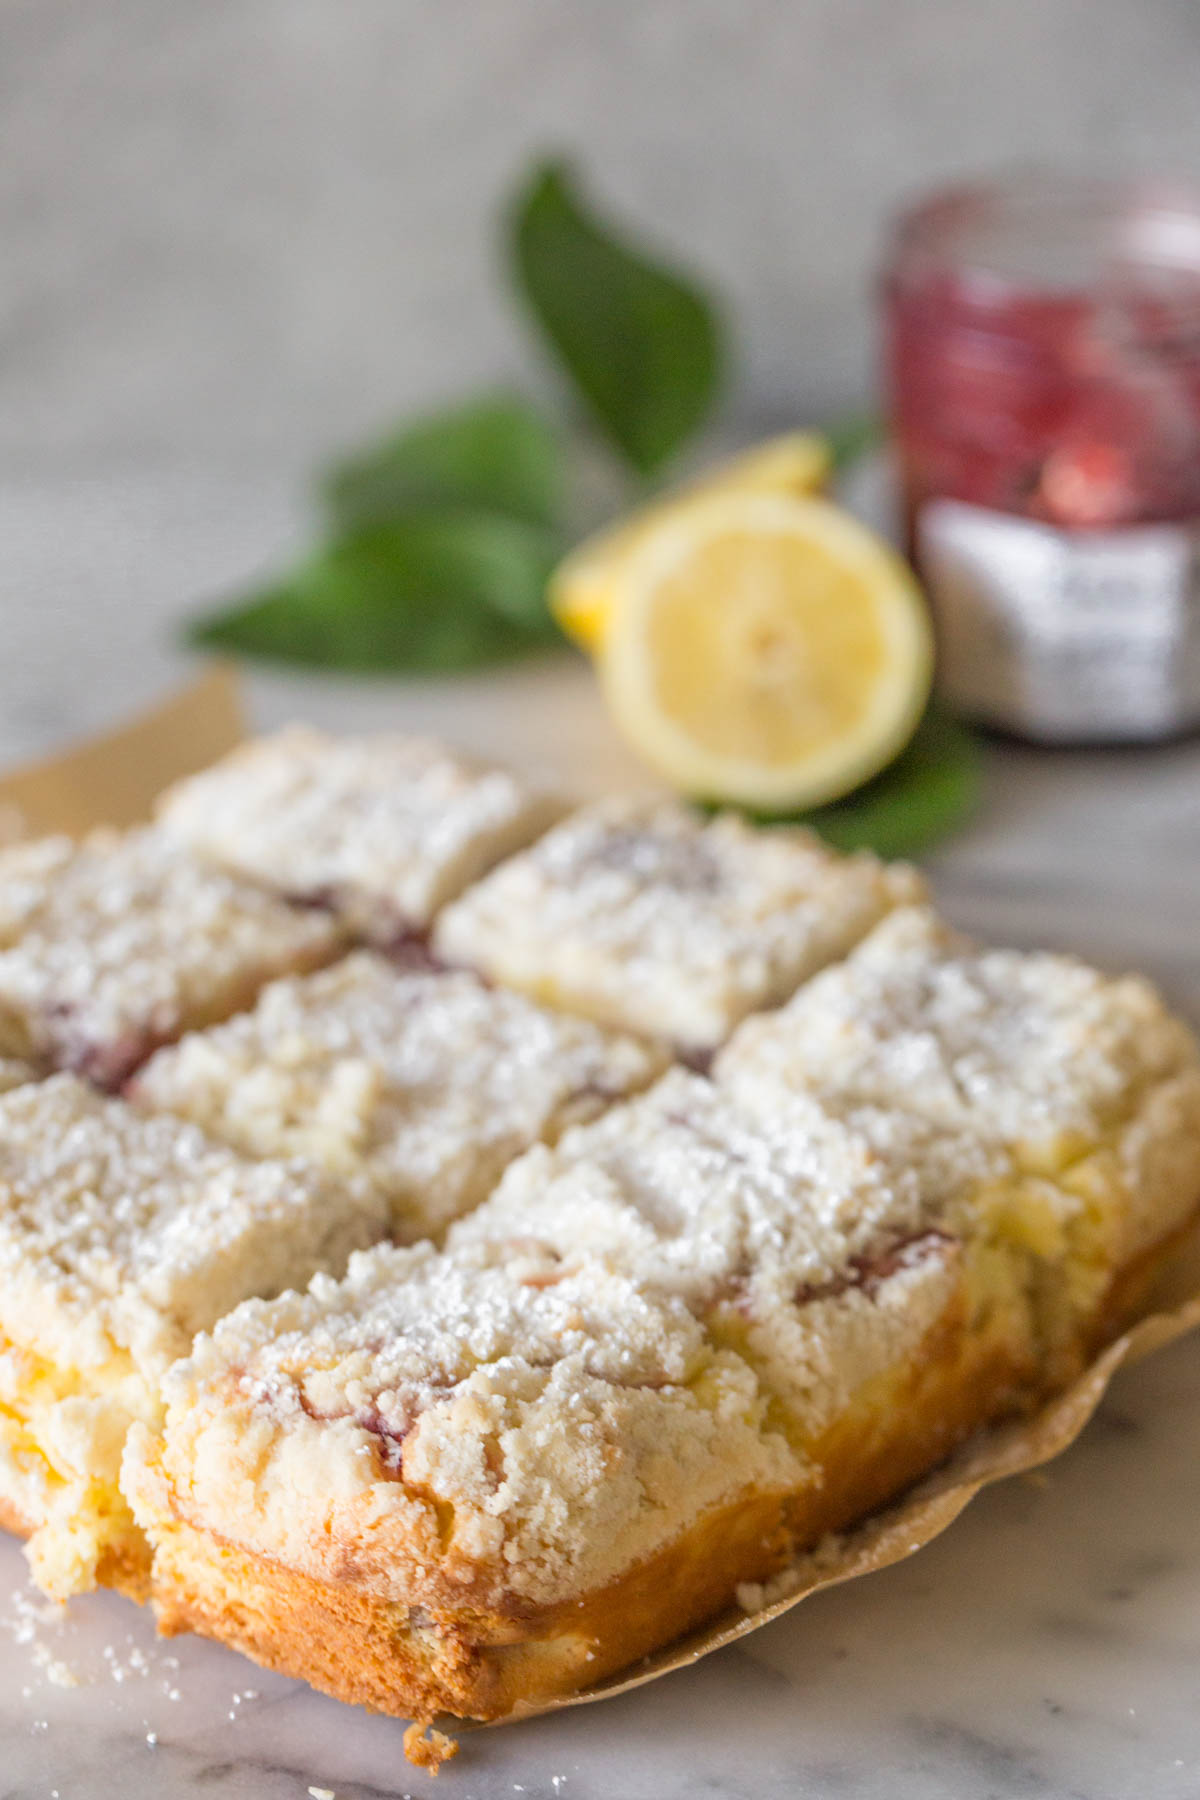 Lemon Raspberry Cream Cheese Coffee Cake dusted in powdered sugar with a grey background.